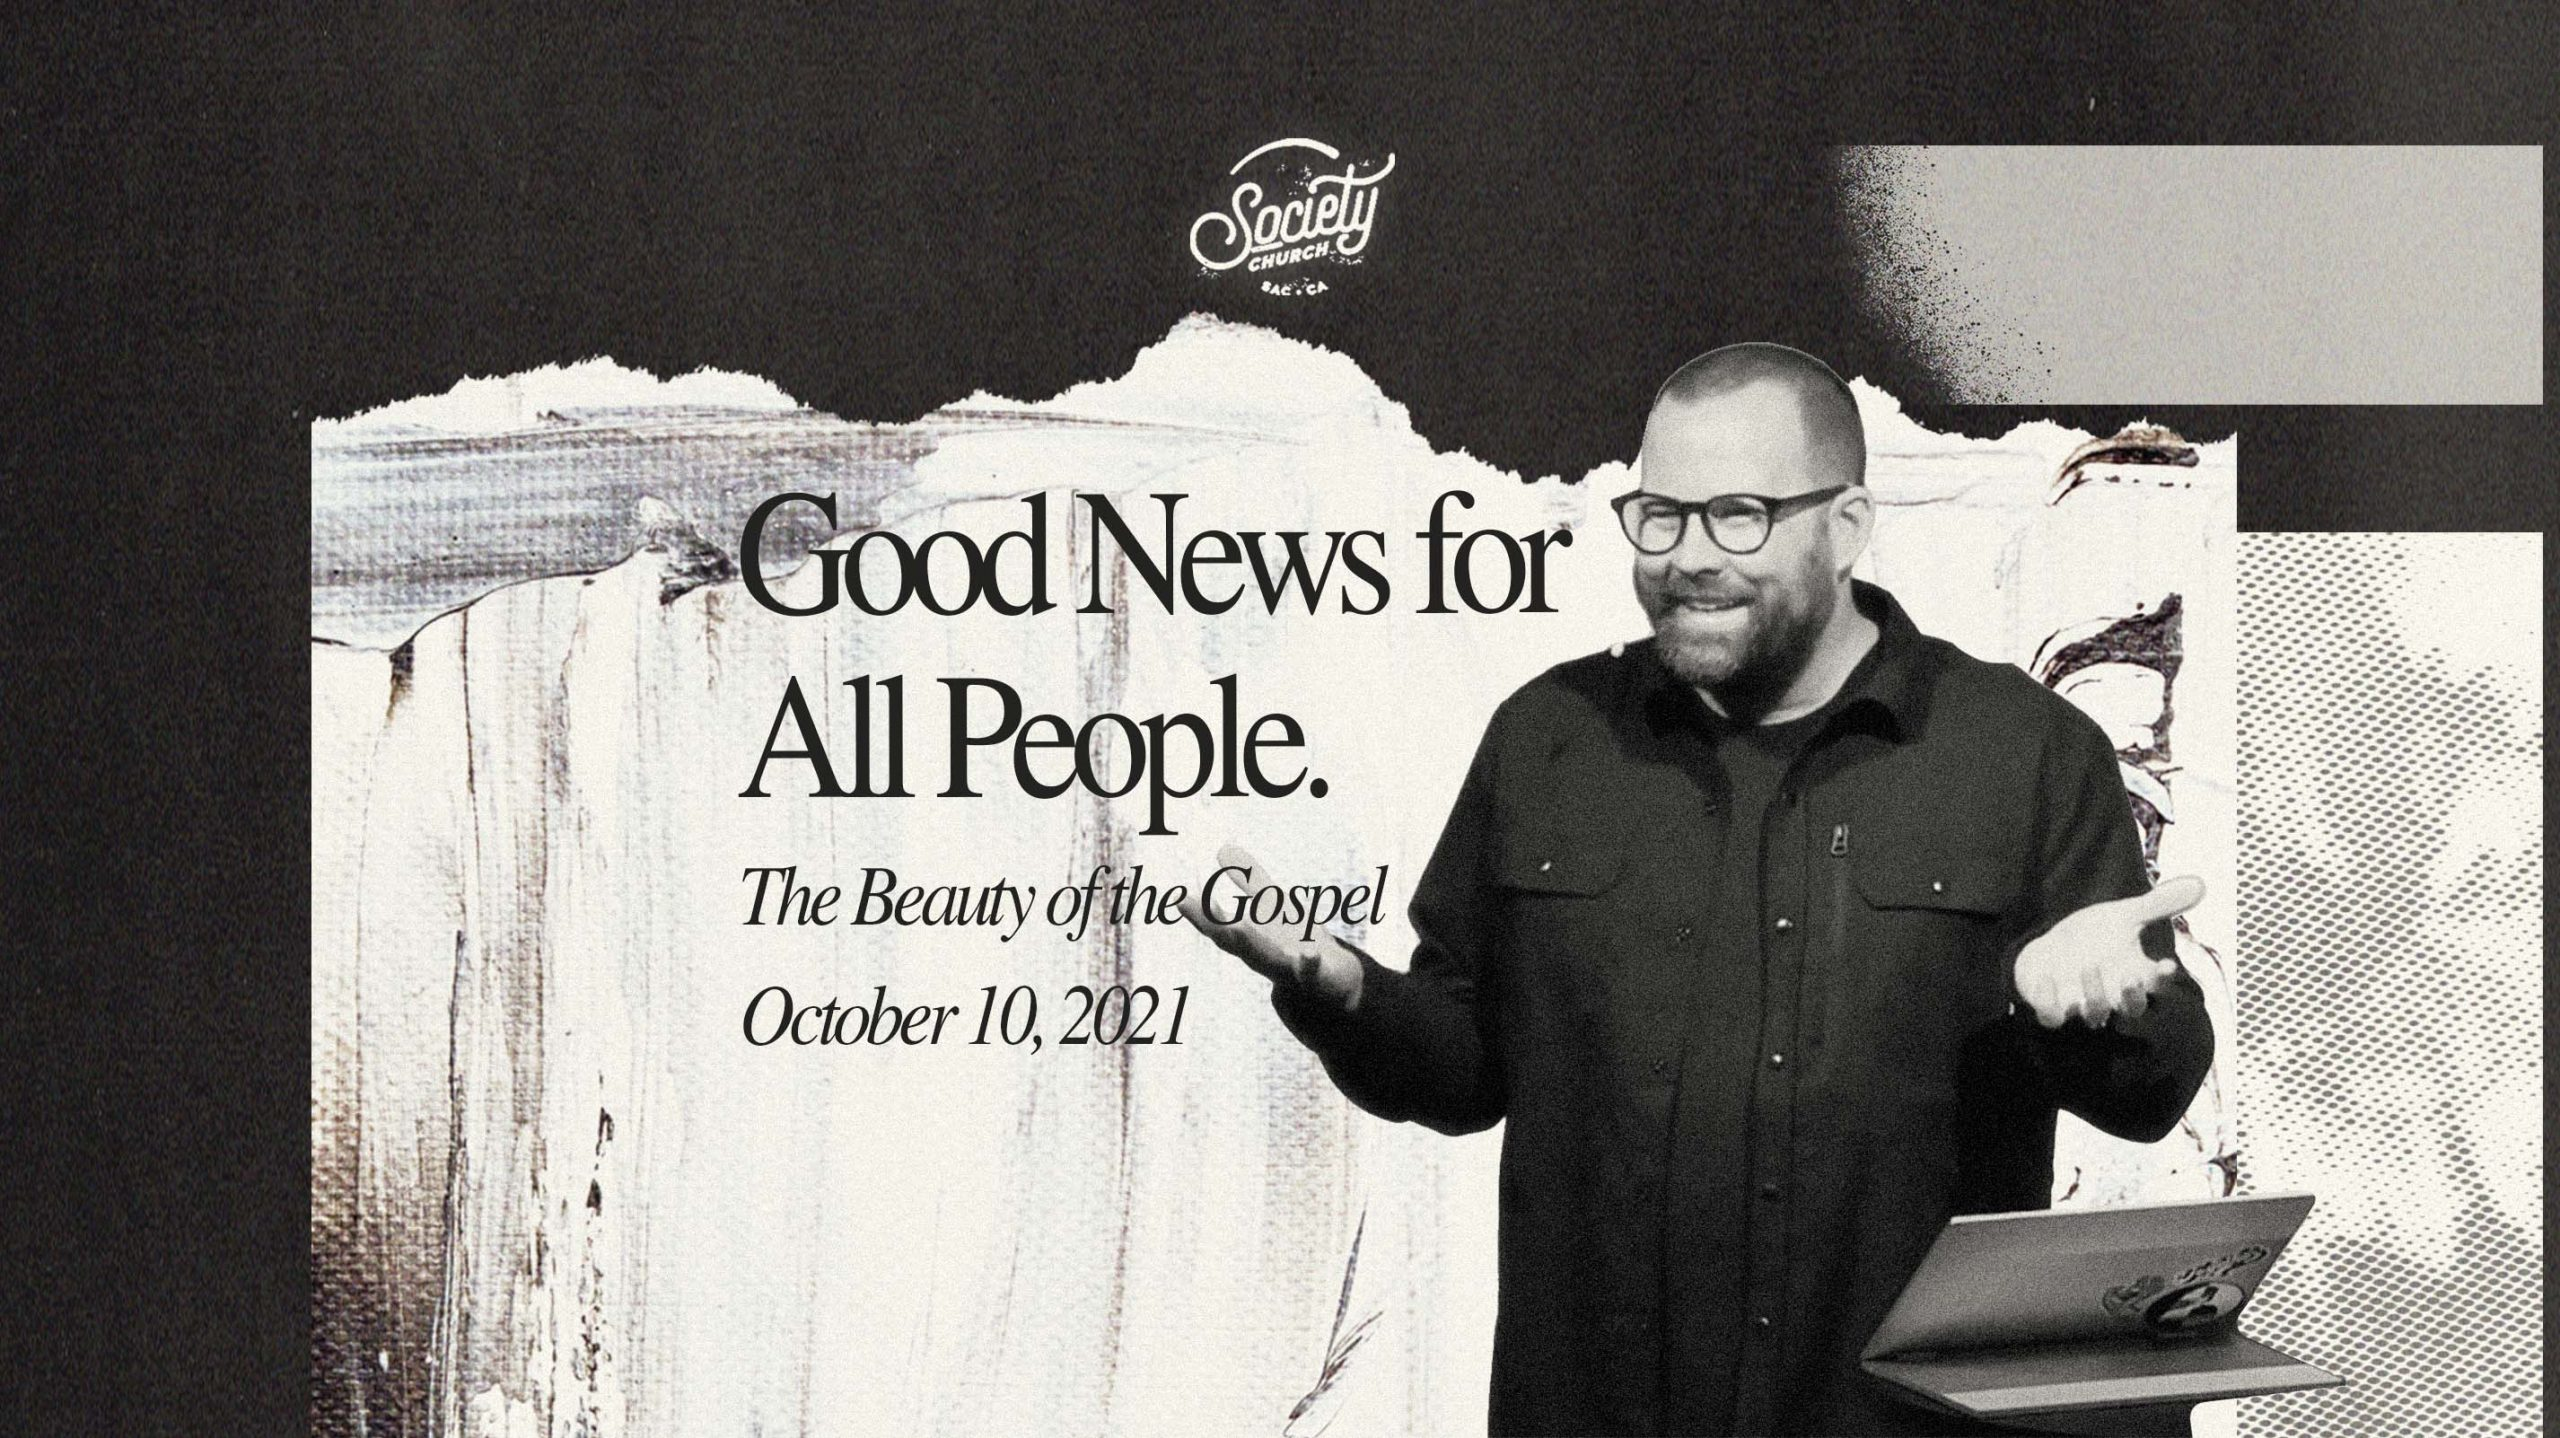 Good News for All People: The Beauty of the Gospel